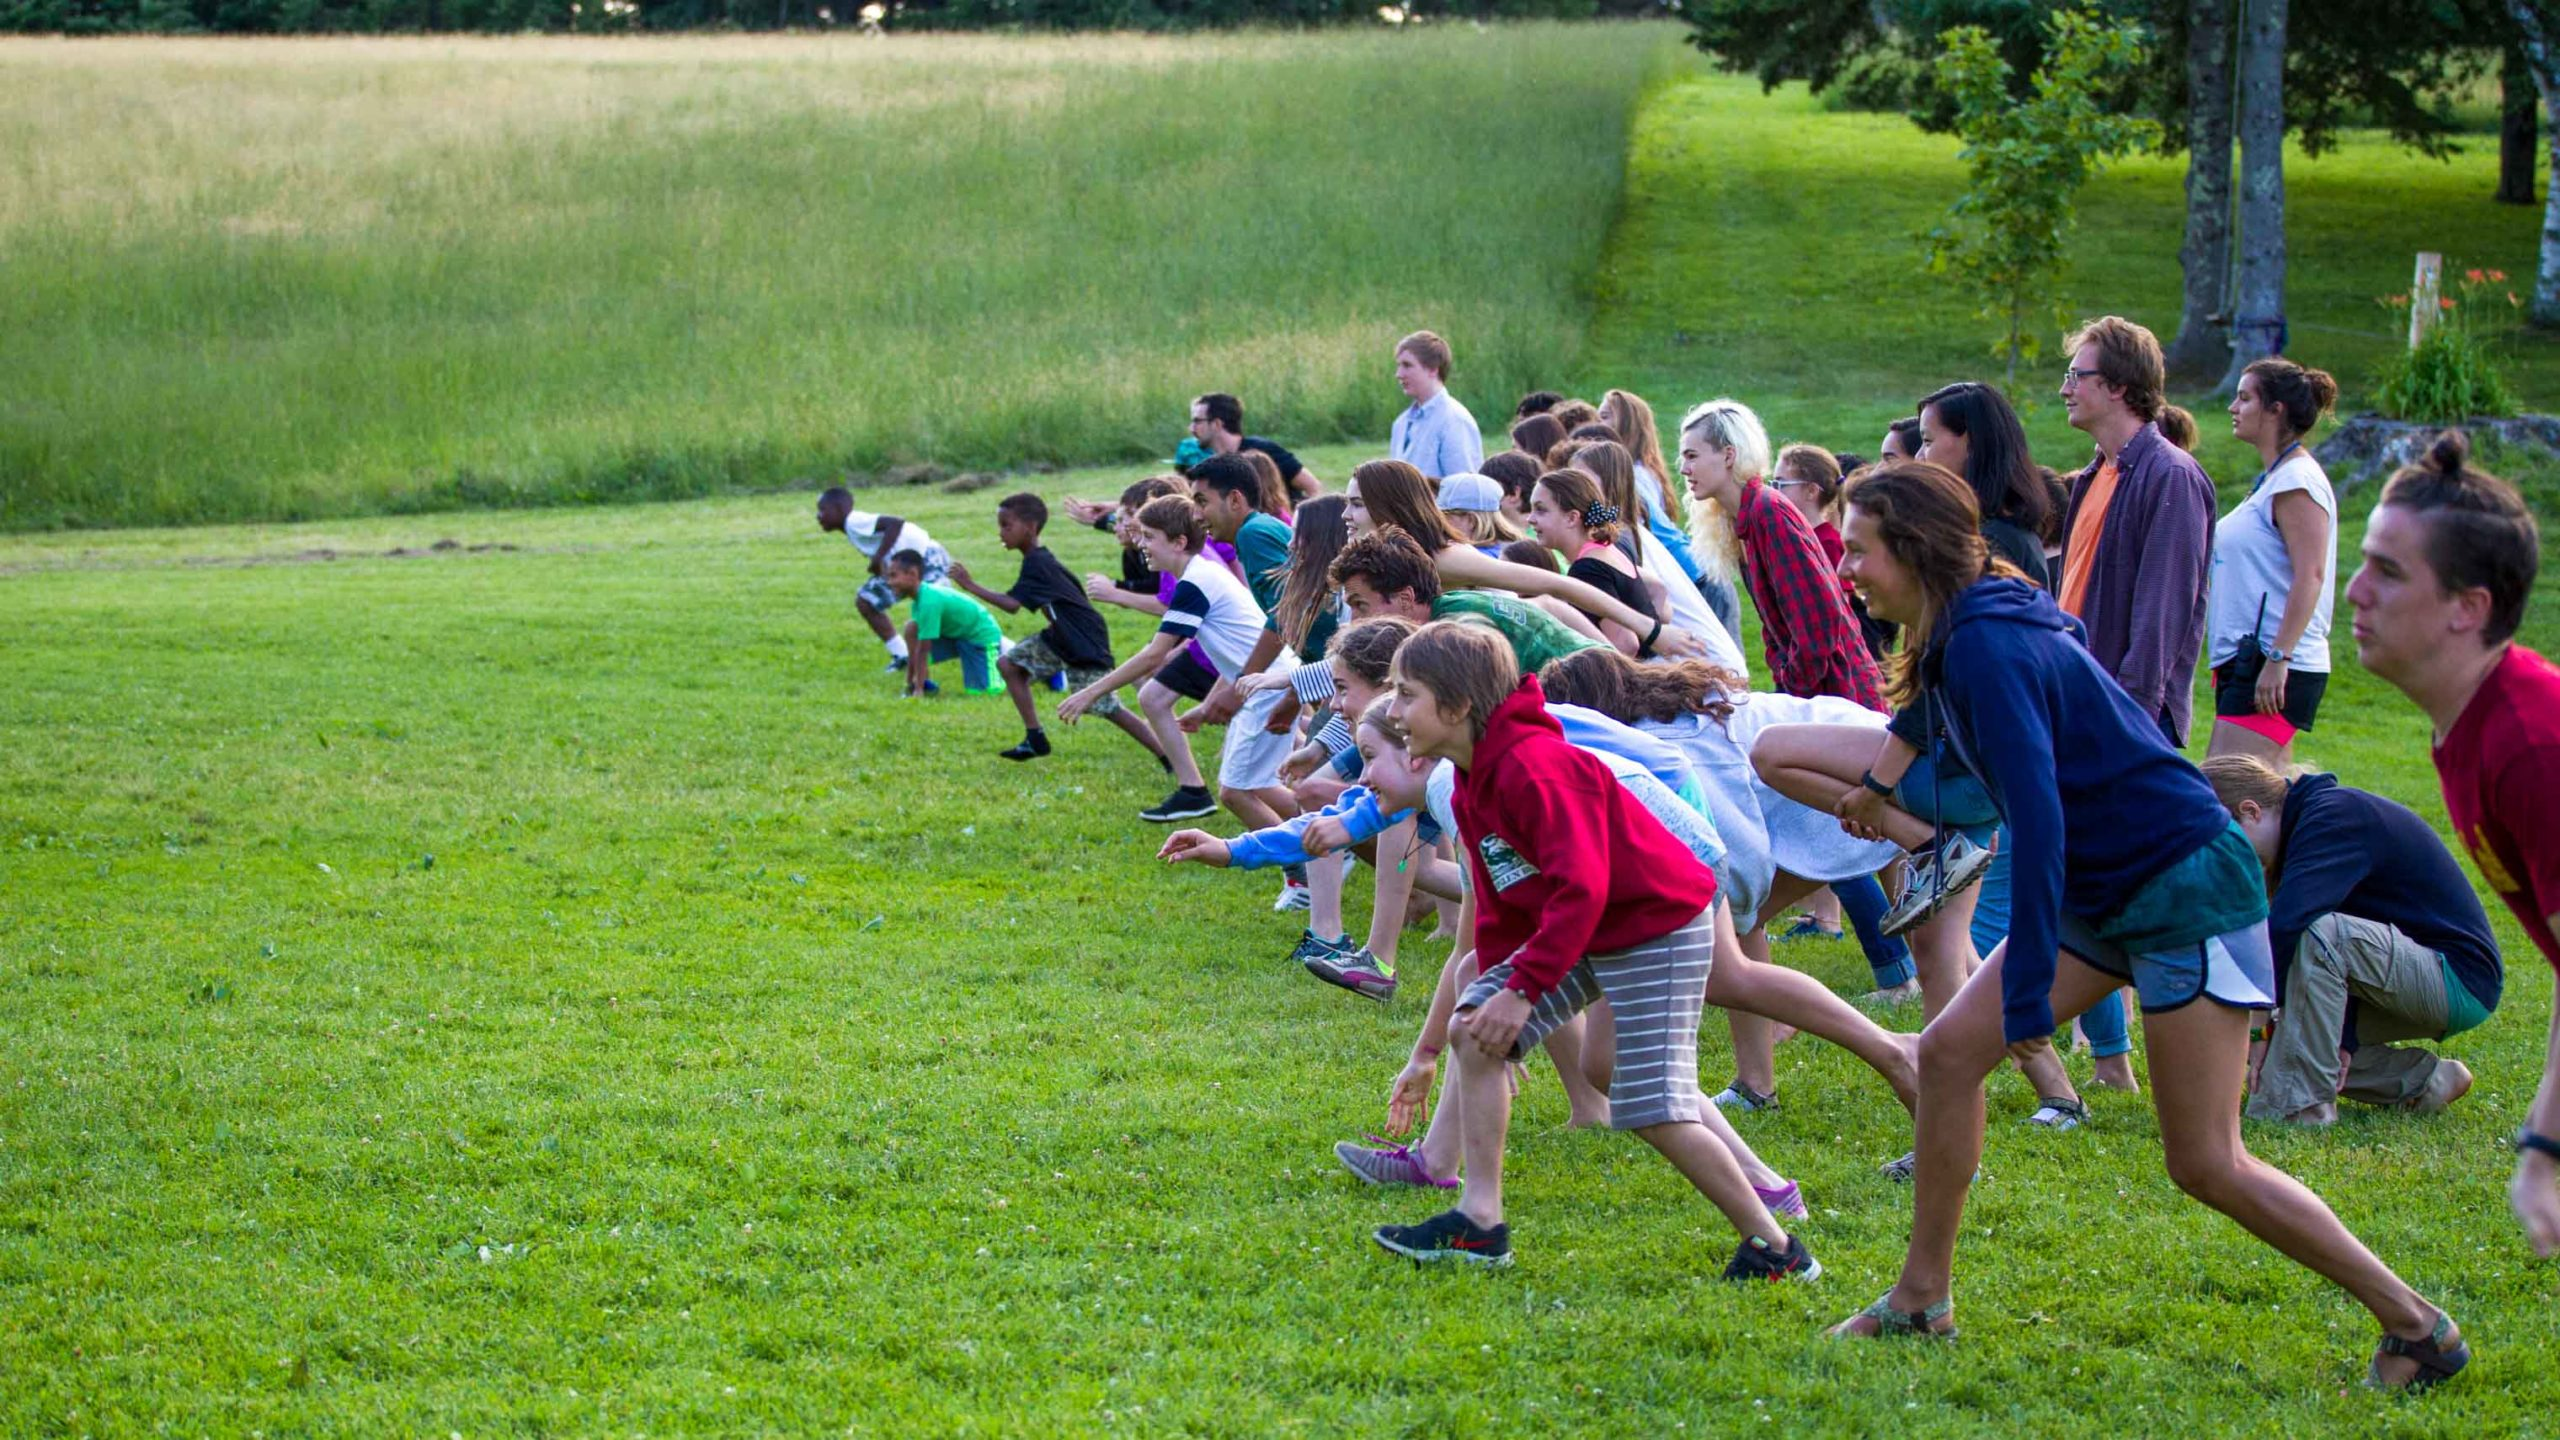 Campers getting ready to run across a field